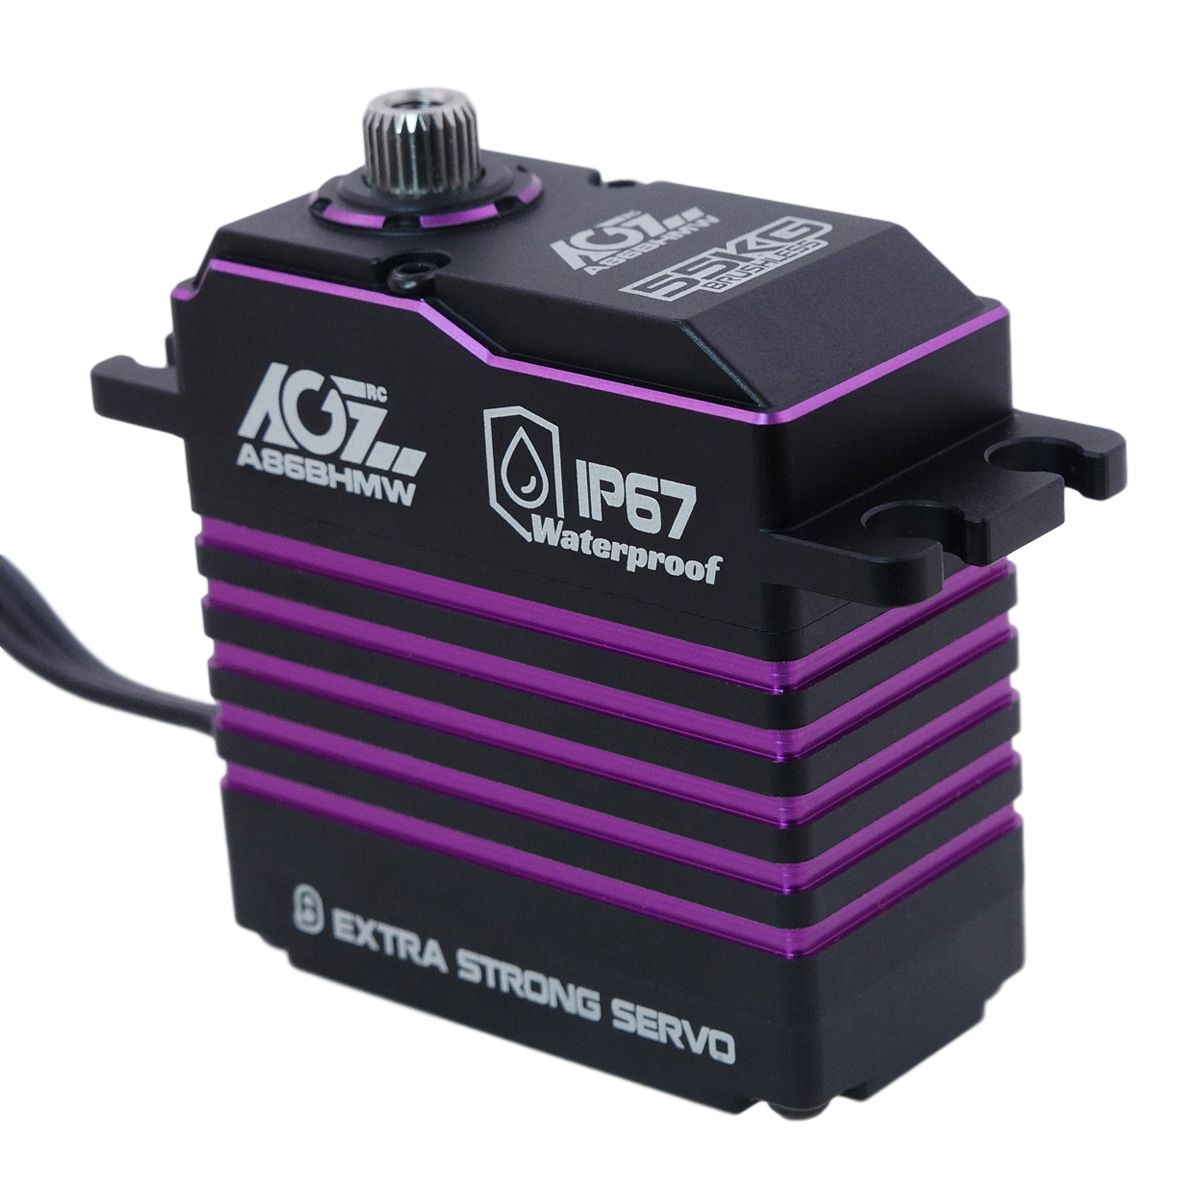 A86BHMW 180 Degree Waterproof Programmable Brushless 55KG Monster Torque Servo For 1/8th Scale Short Course Trucks